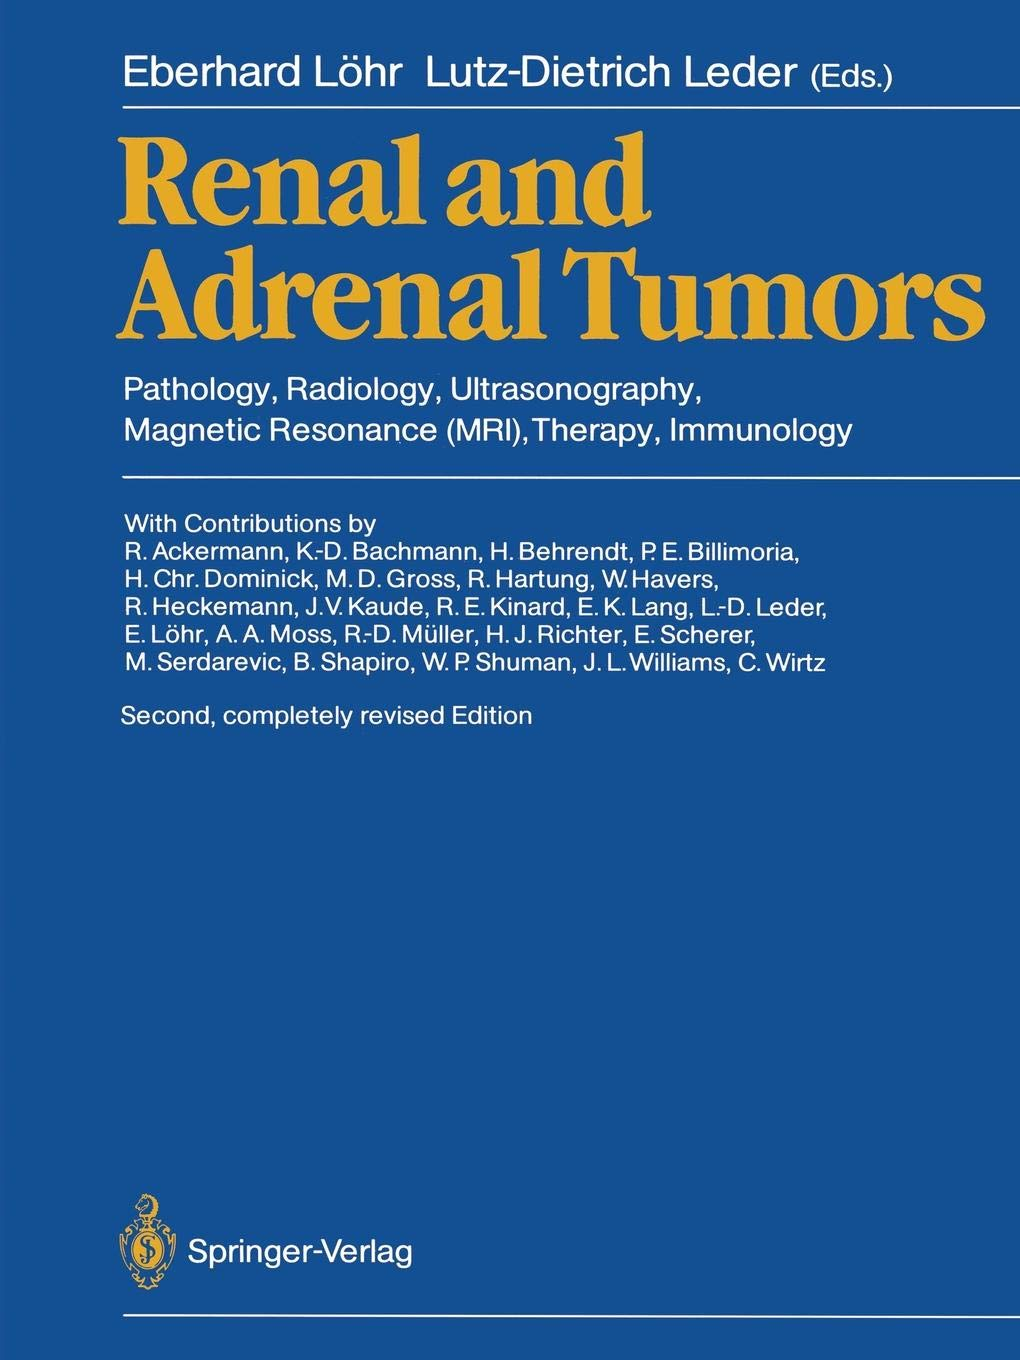 Renal and Adrenal Tumors: Pathology, Radiology, Ultrasonography, Therapy, Immunology